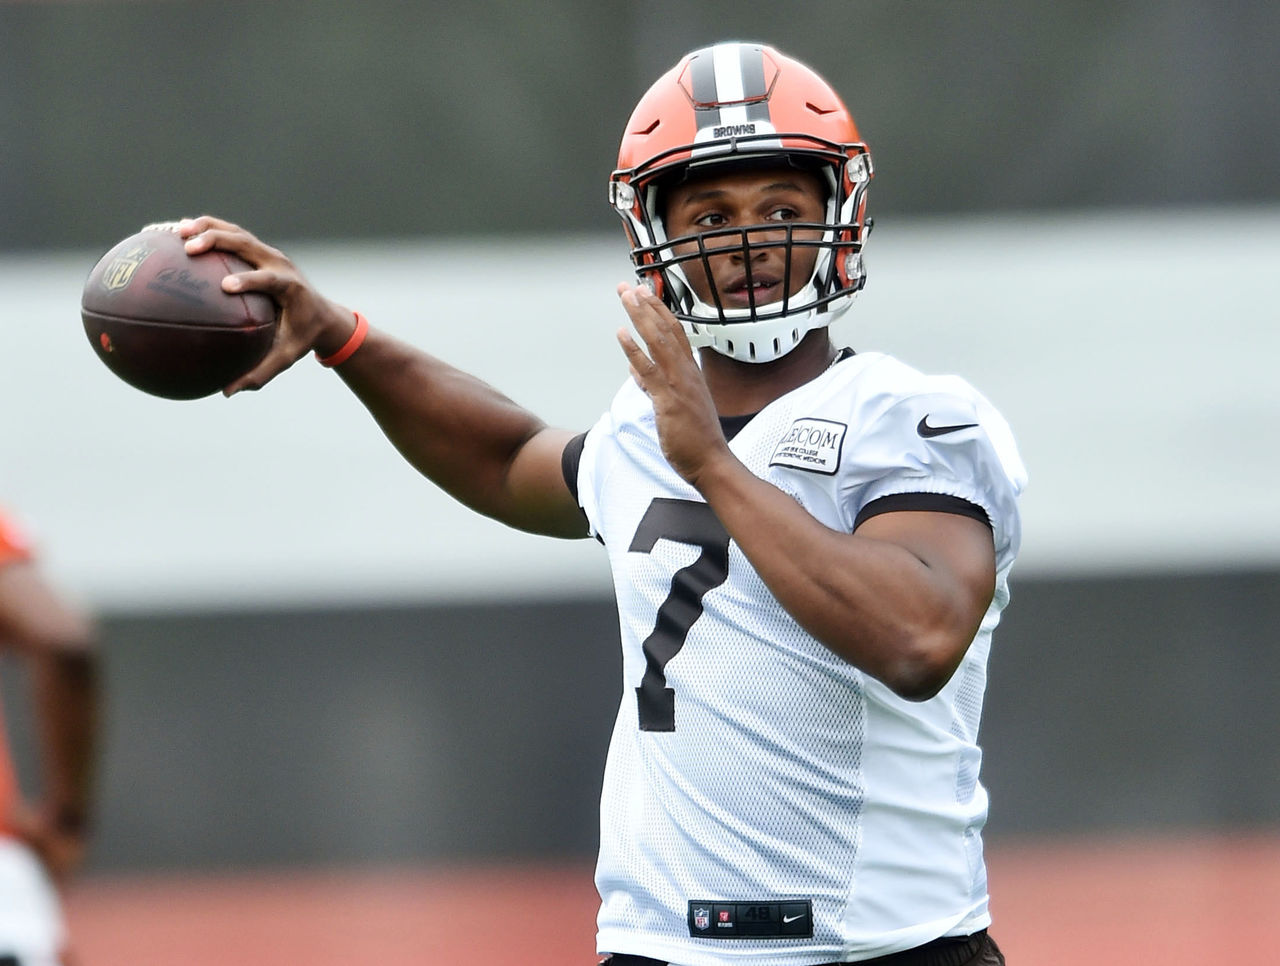 Cropped_2017-05-24t181307z_928117222_nocid_rtrmadp_3_nfl-cleveland-browns-ota